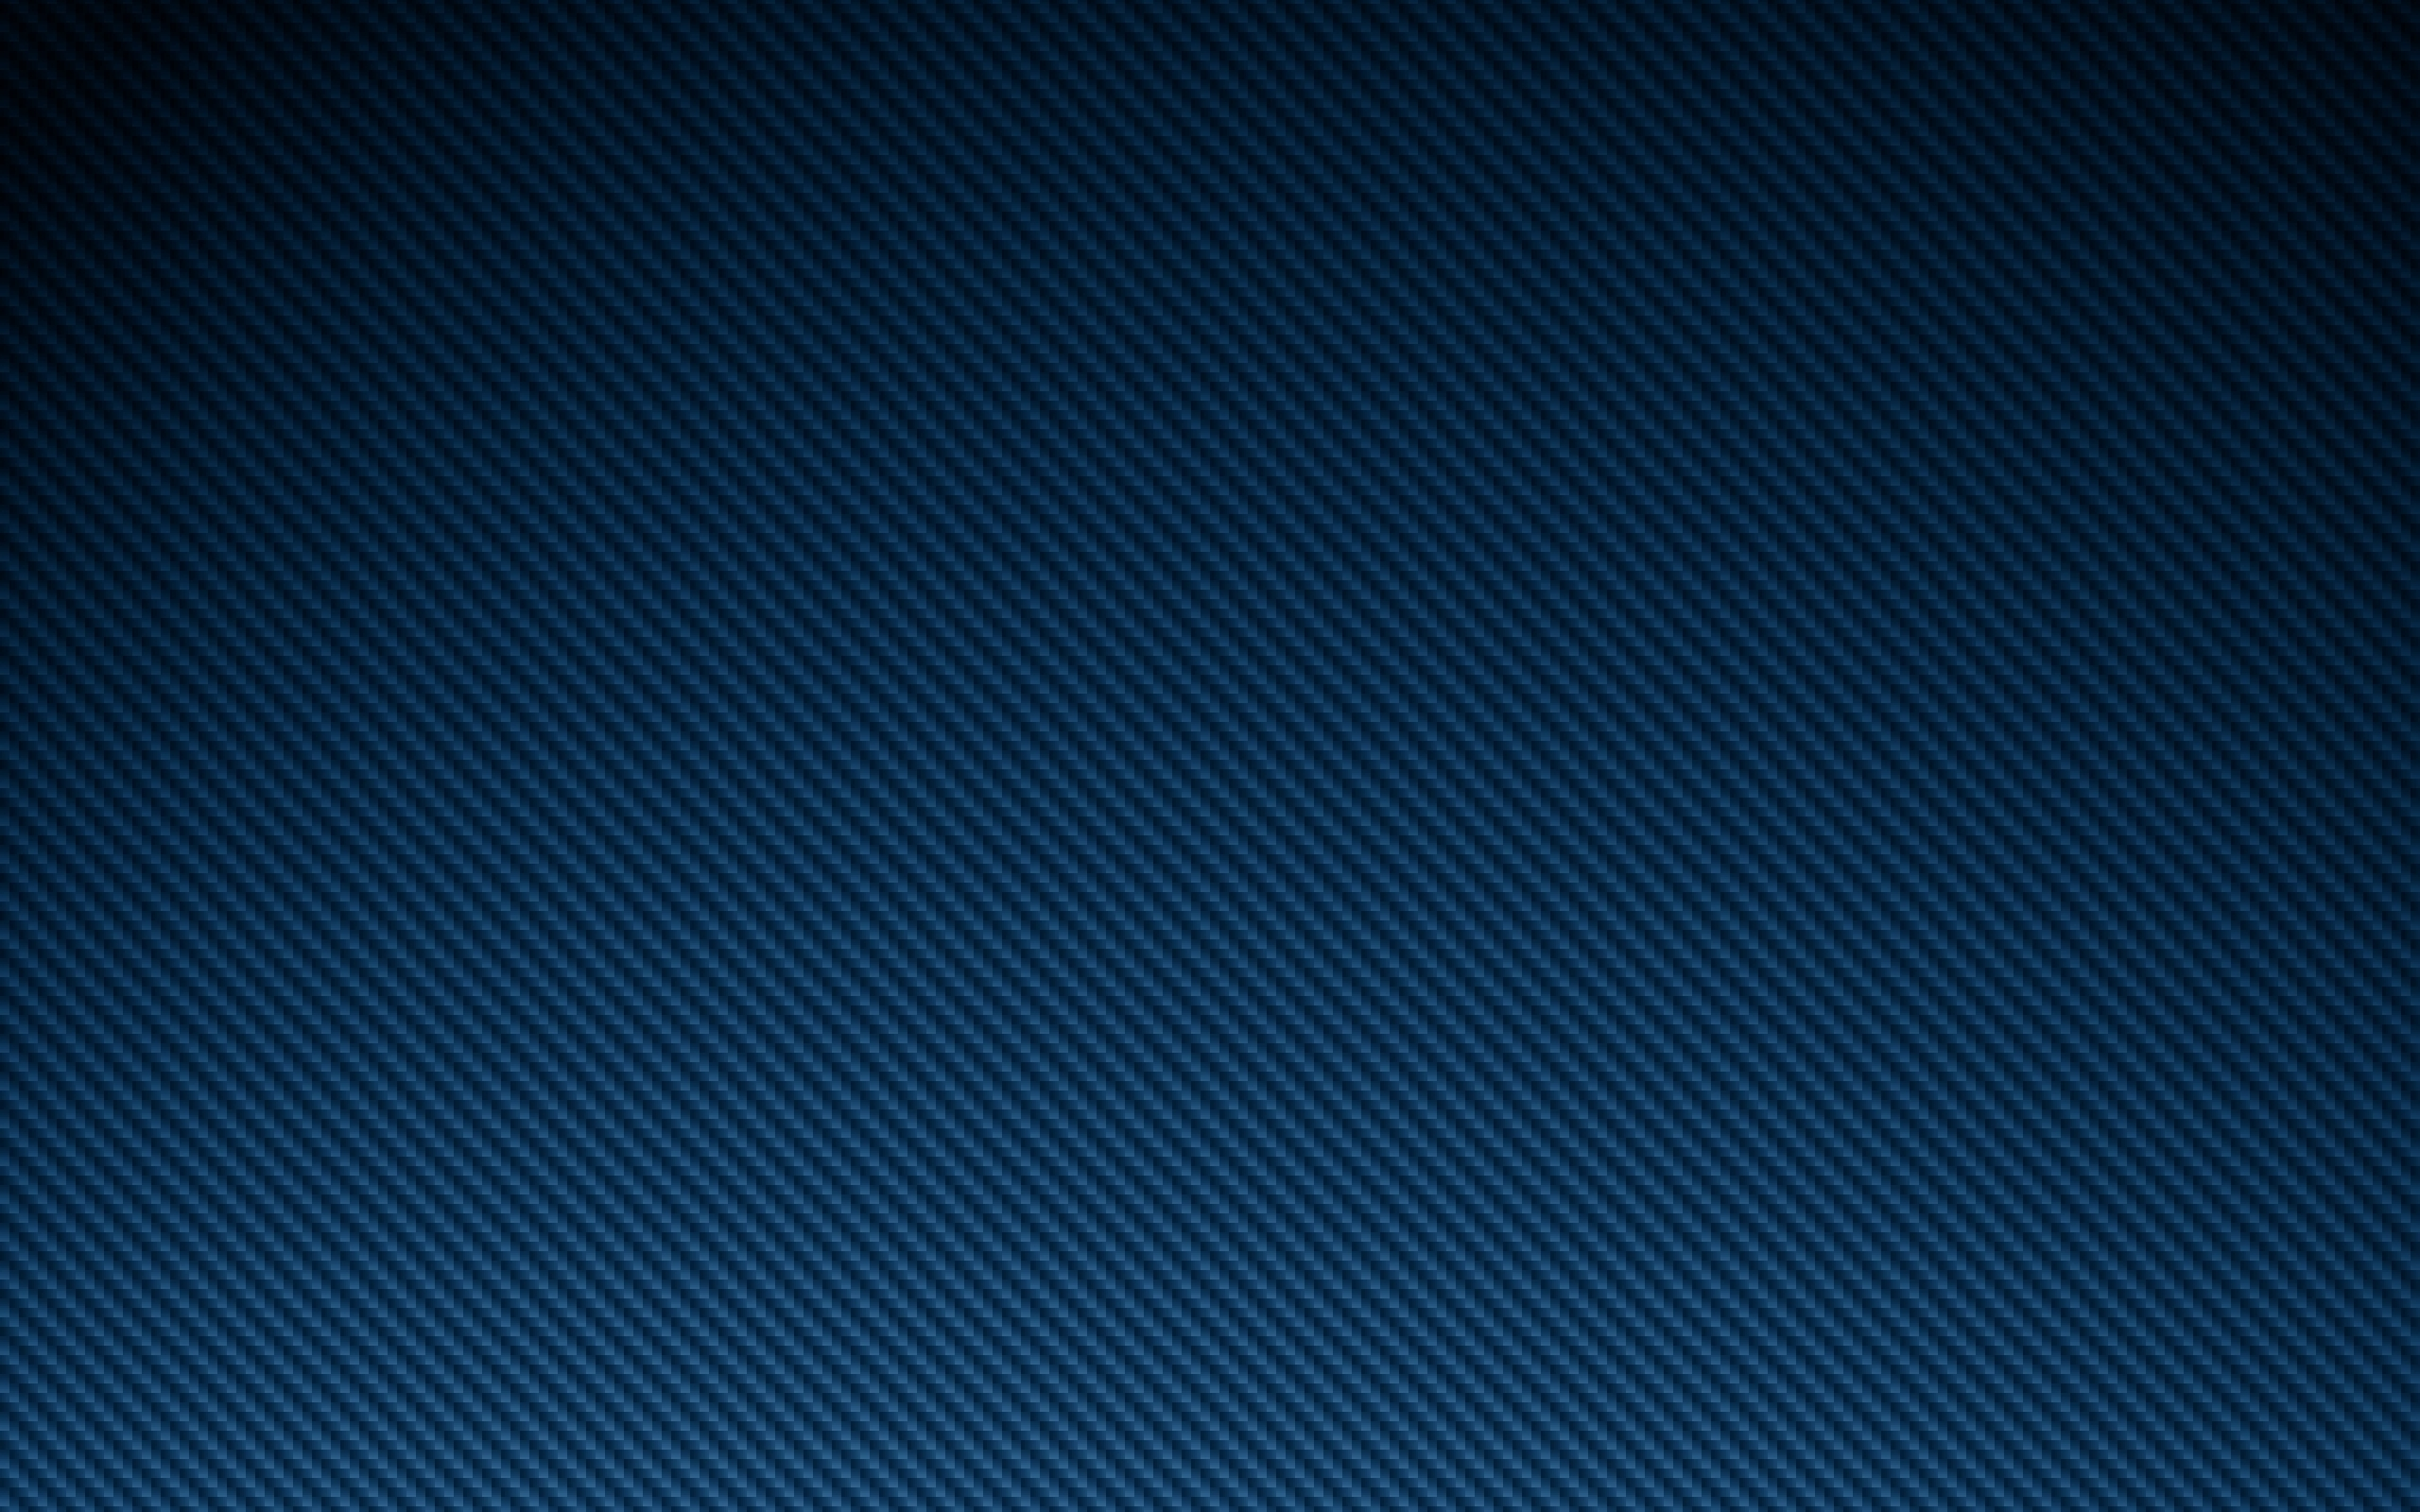 wallpaper-art-blue-carbon-fiber-pictures-hd | wallpaper.wiki